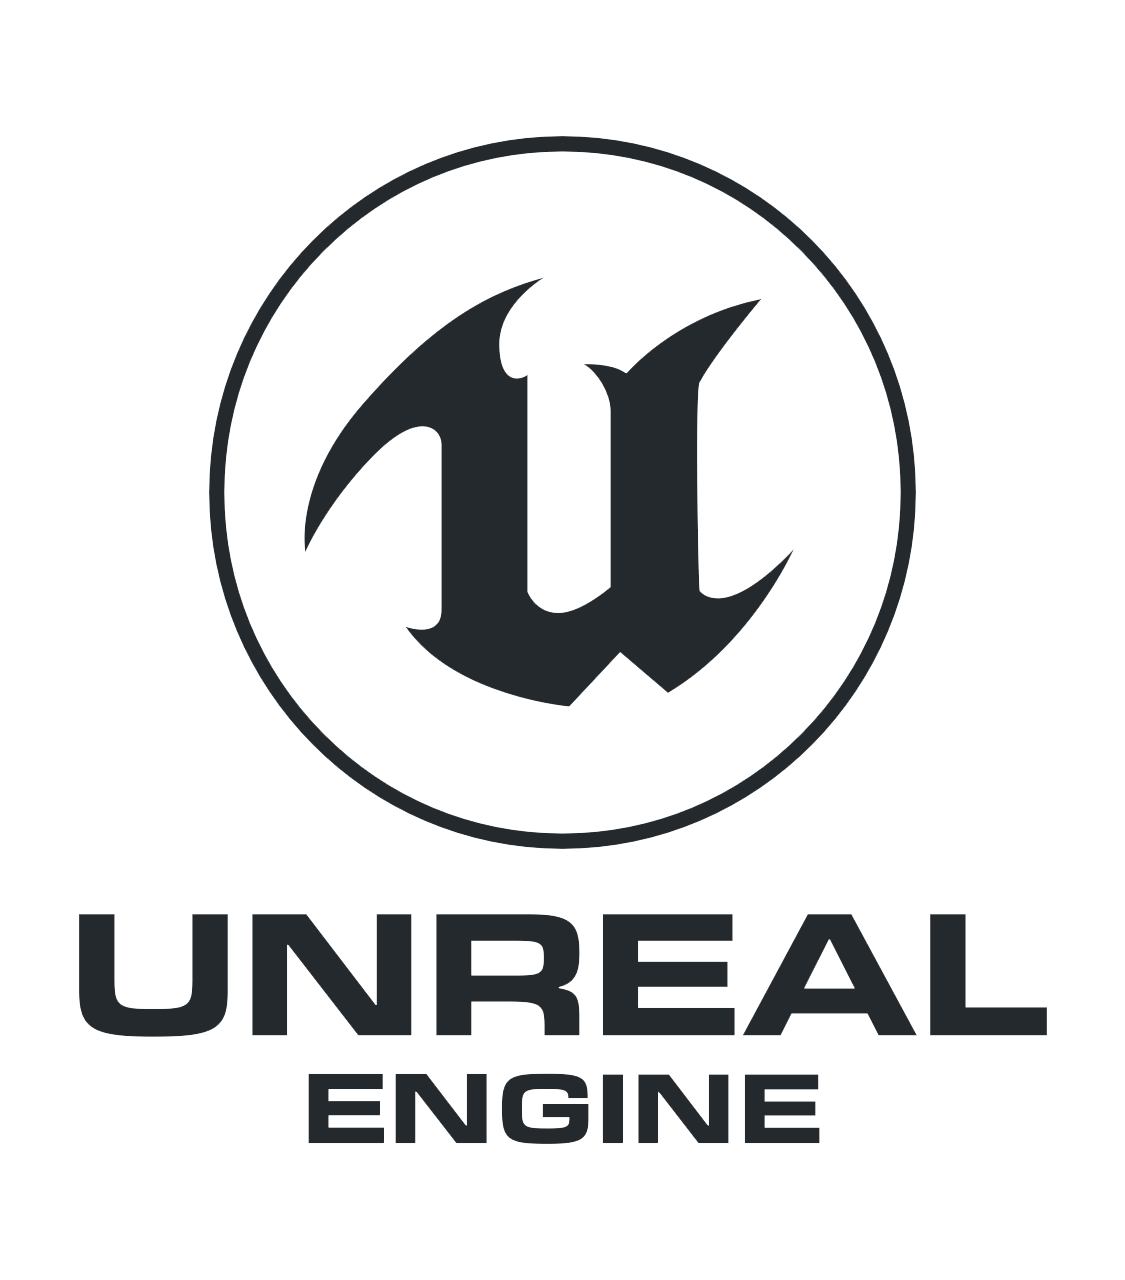 Engine Text Unreal Tournament Area Free Clipart HD PNG Image